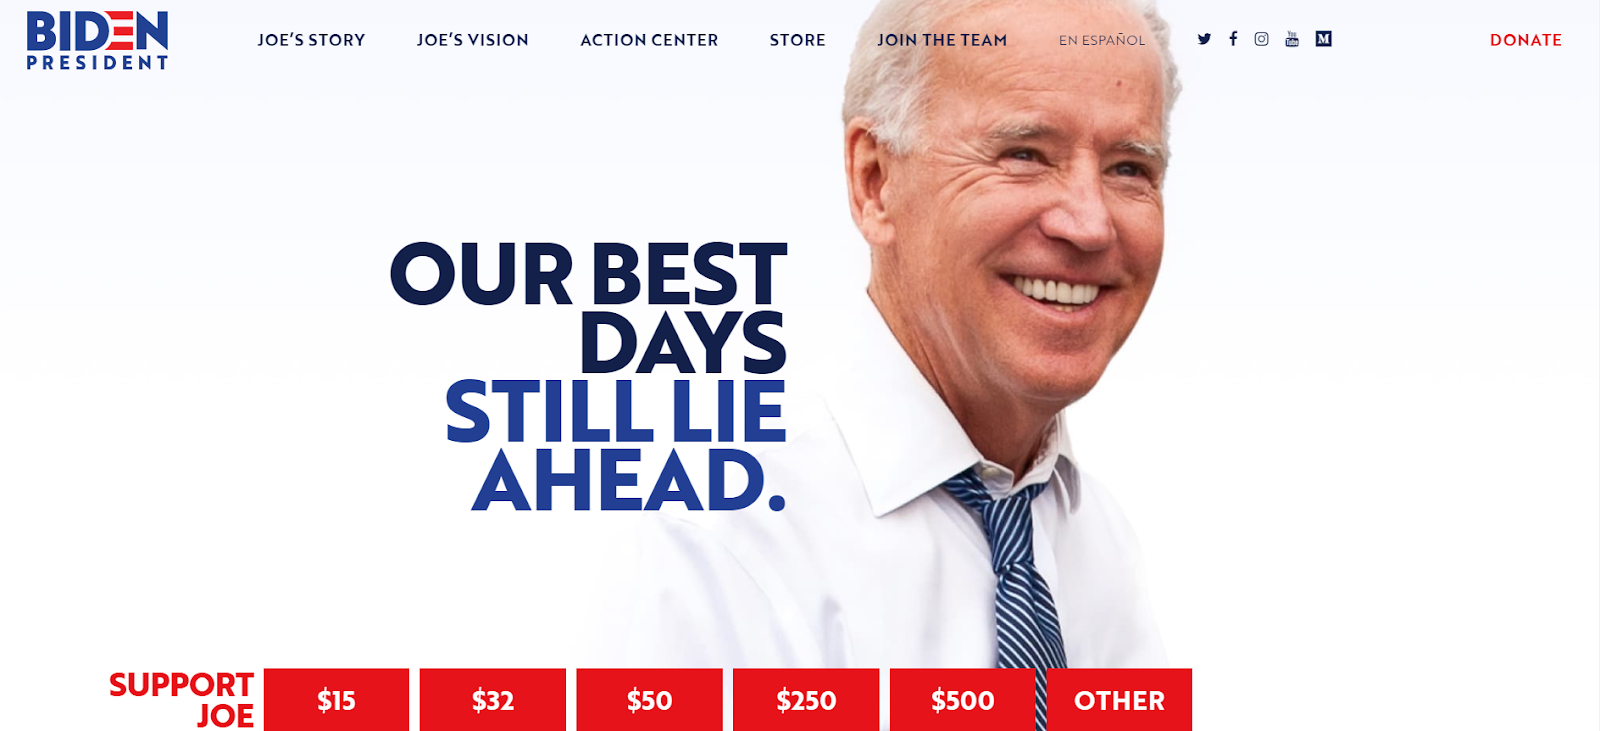 Joe Biden Website